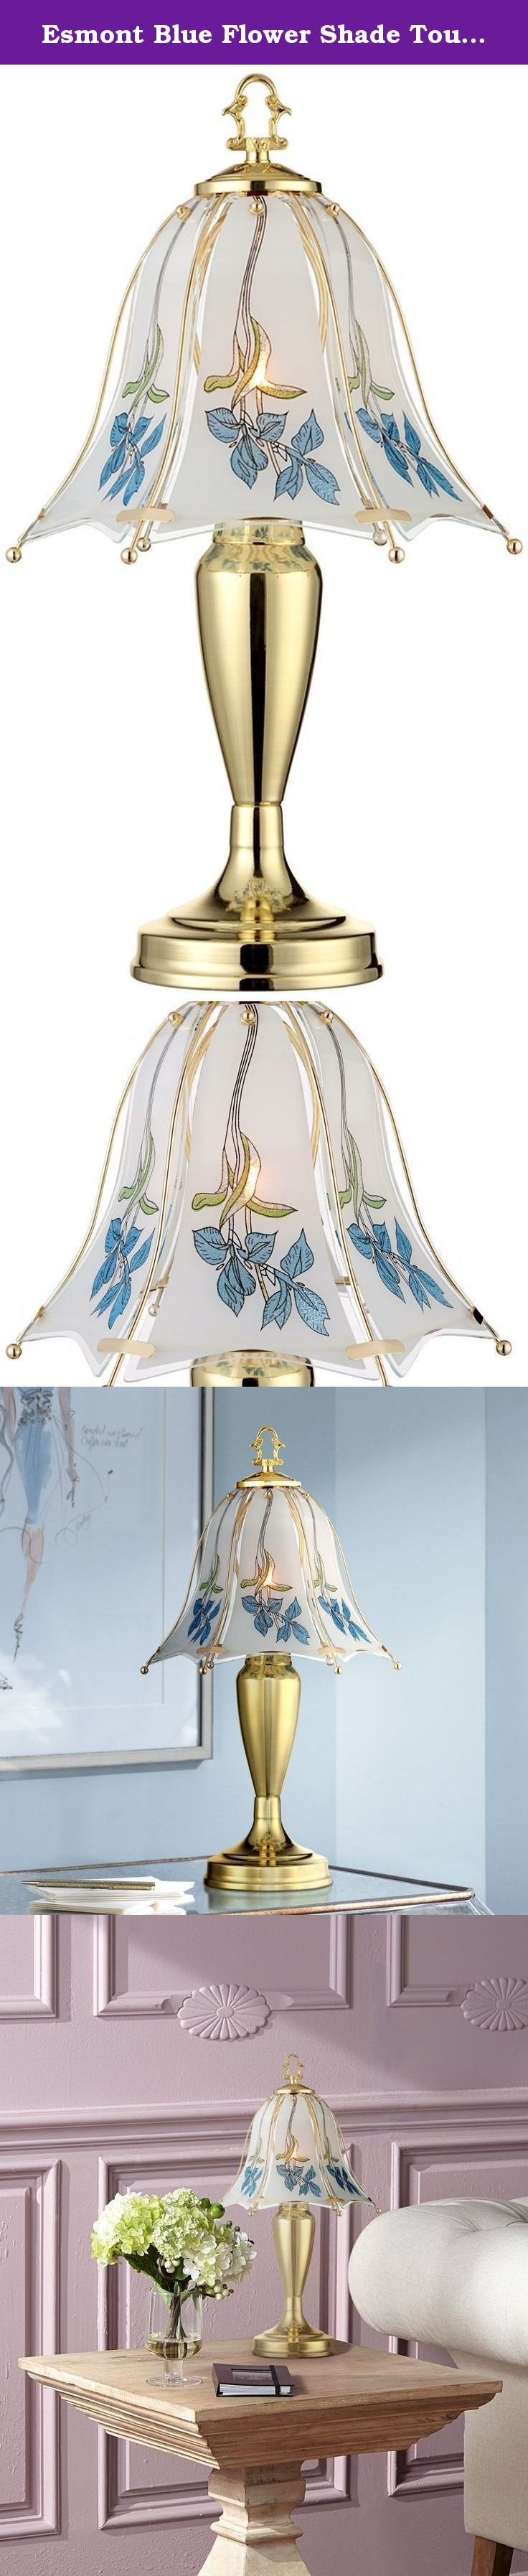 """Esmont Blue Flower Shade Touch Table Lamp. This traditional and elegant style features a convenient 3-touch switch. The glass shade features a lovely floral design in a pale blue hue. Ideal for any formal or traditional style room. From the Regency Hill collection of table lamps. - Touch table lamp. - Metal base. - Glass shade. - 3-touch switch. - Small table lamp size. - 40 watt G9 included. - 18"""" high. - Shade measures 10"""" wide and 8"""" high."""